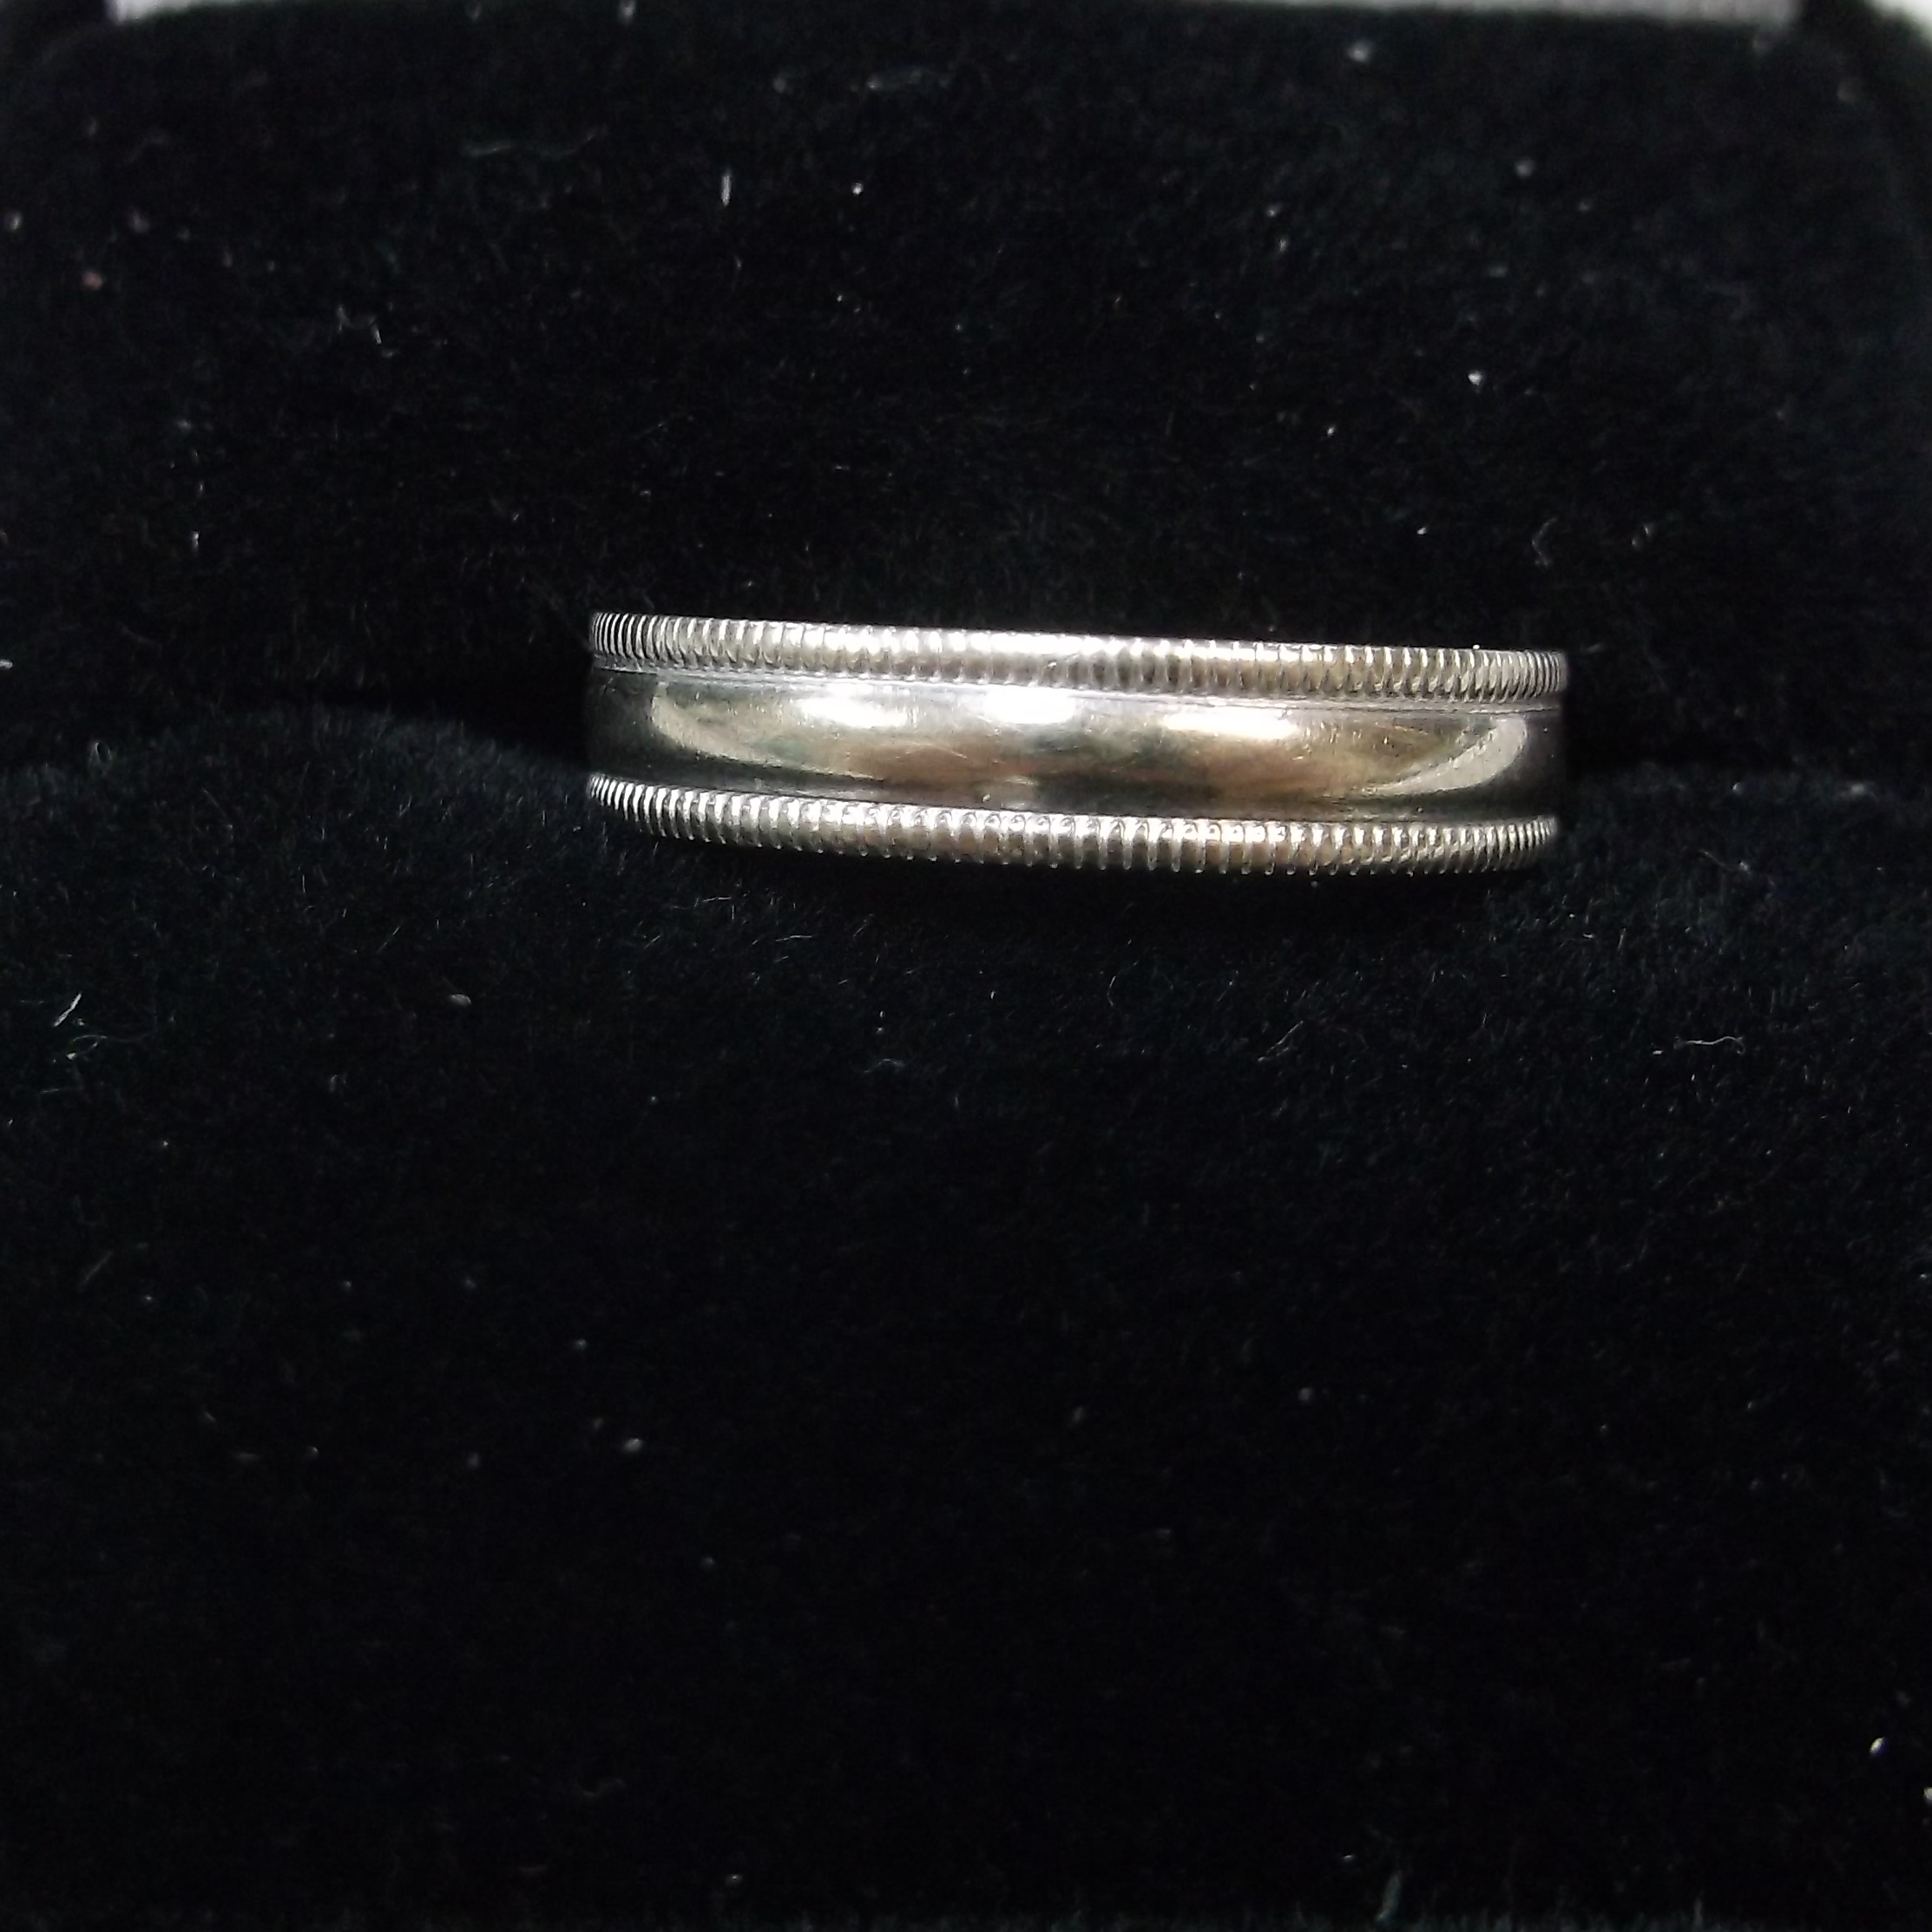 WHITE GOLD BAND WITH EMBELLISHMENTS ON EDGES